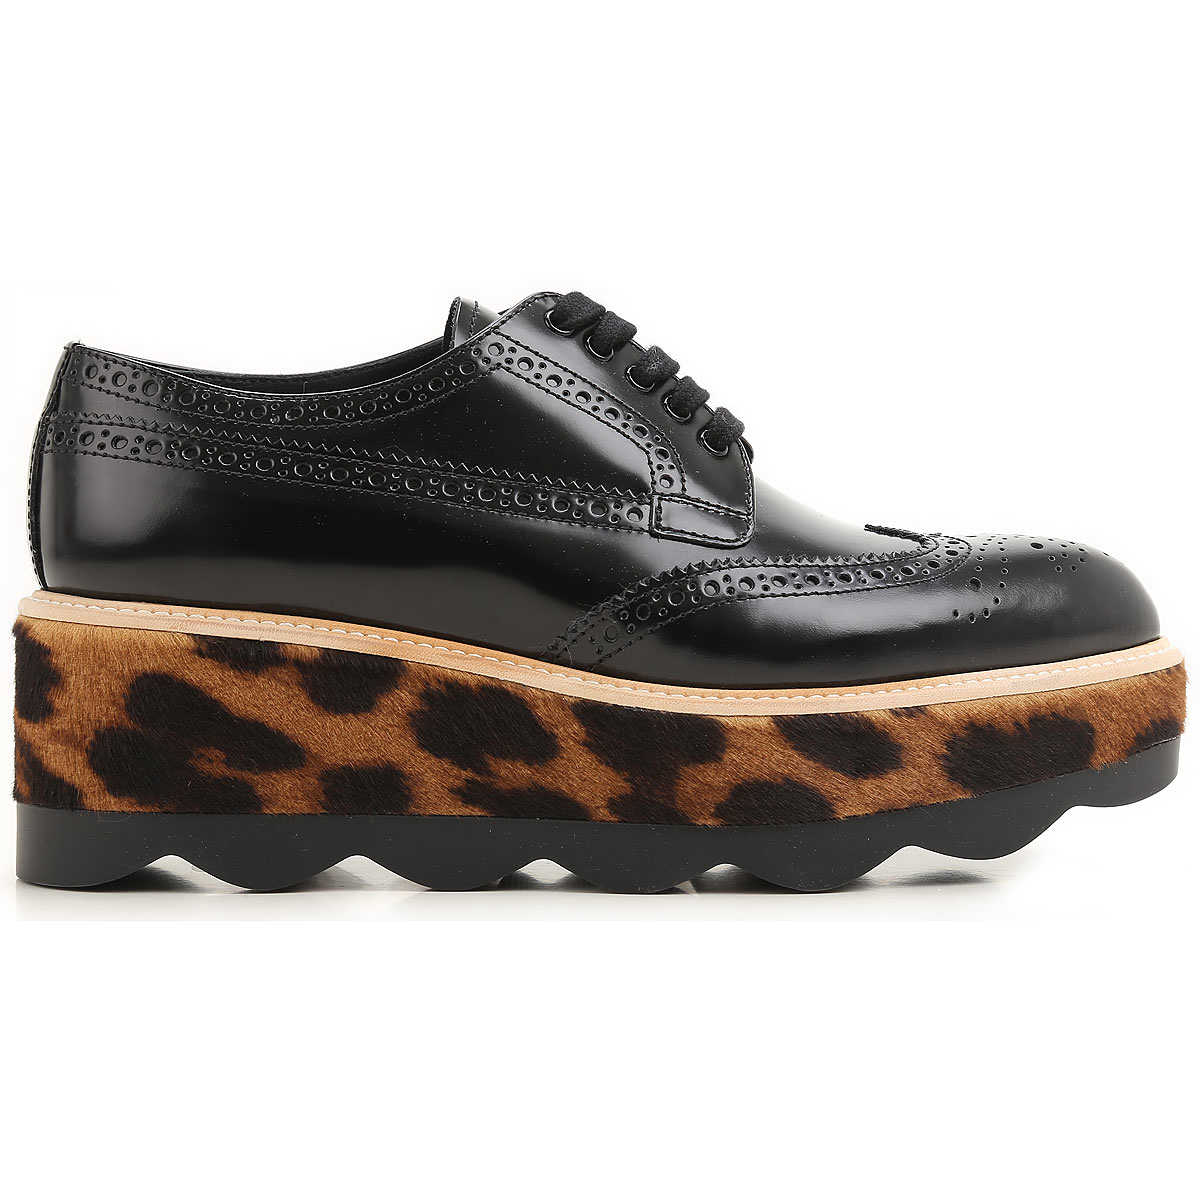 Prada Brogues Oxford Shoes On Sale in Outlet Black DK - GOOFASH - Womens LEATHER SHOES